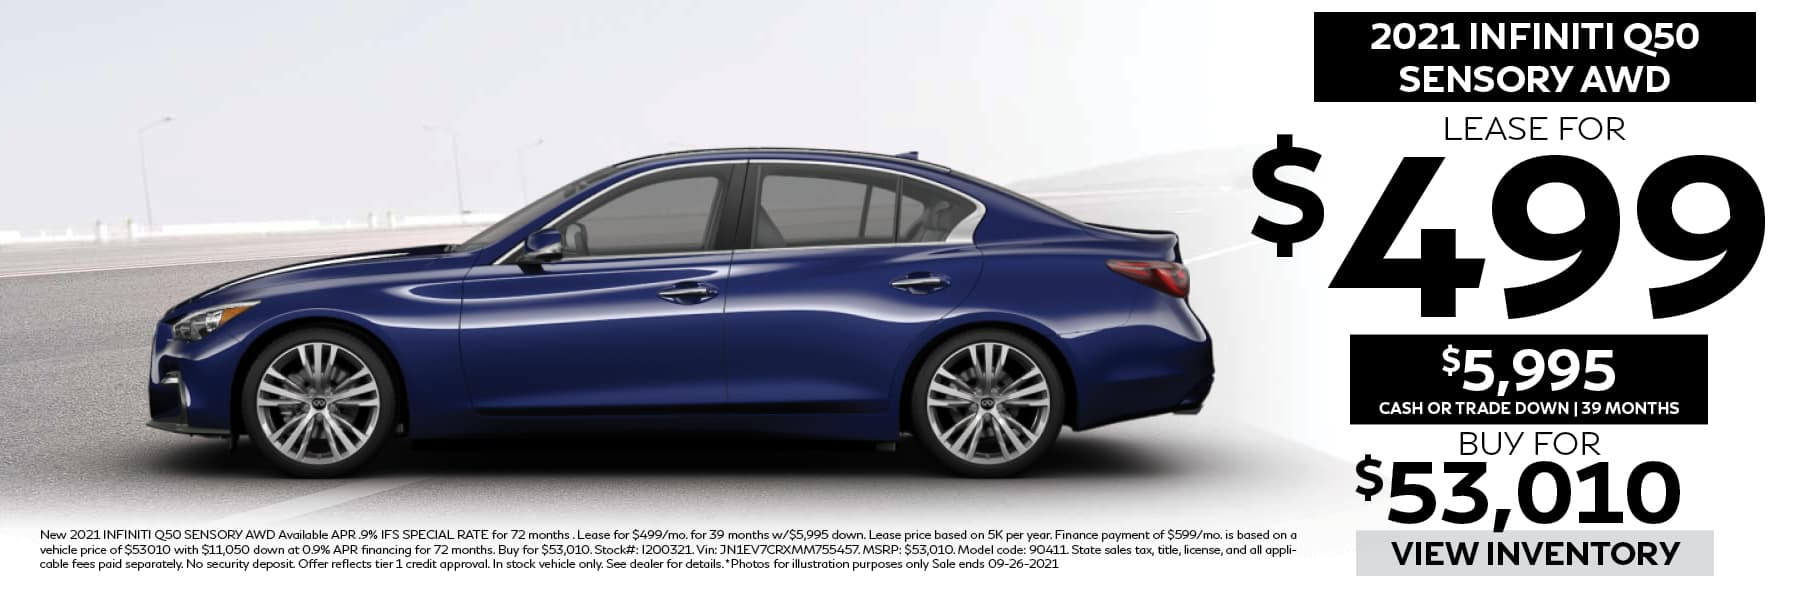 Lease 2021 INFINITI Q50 SENSORY for $499 per Month with $5,995 Cash or Trade Down